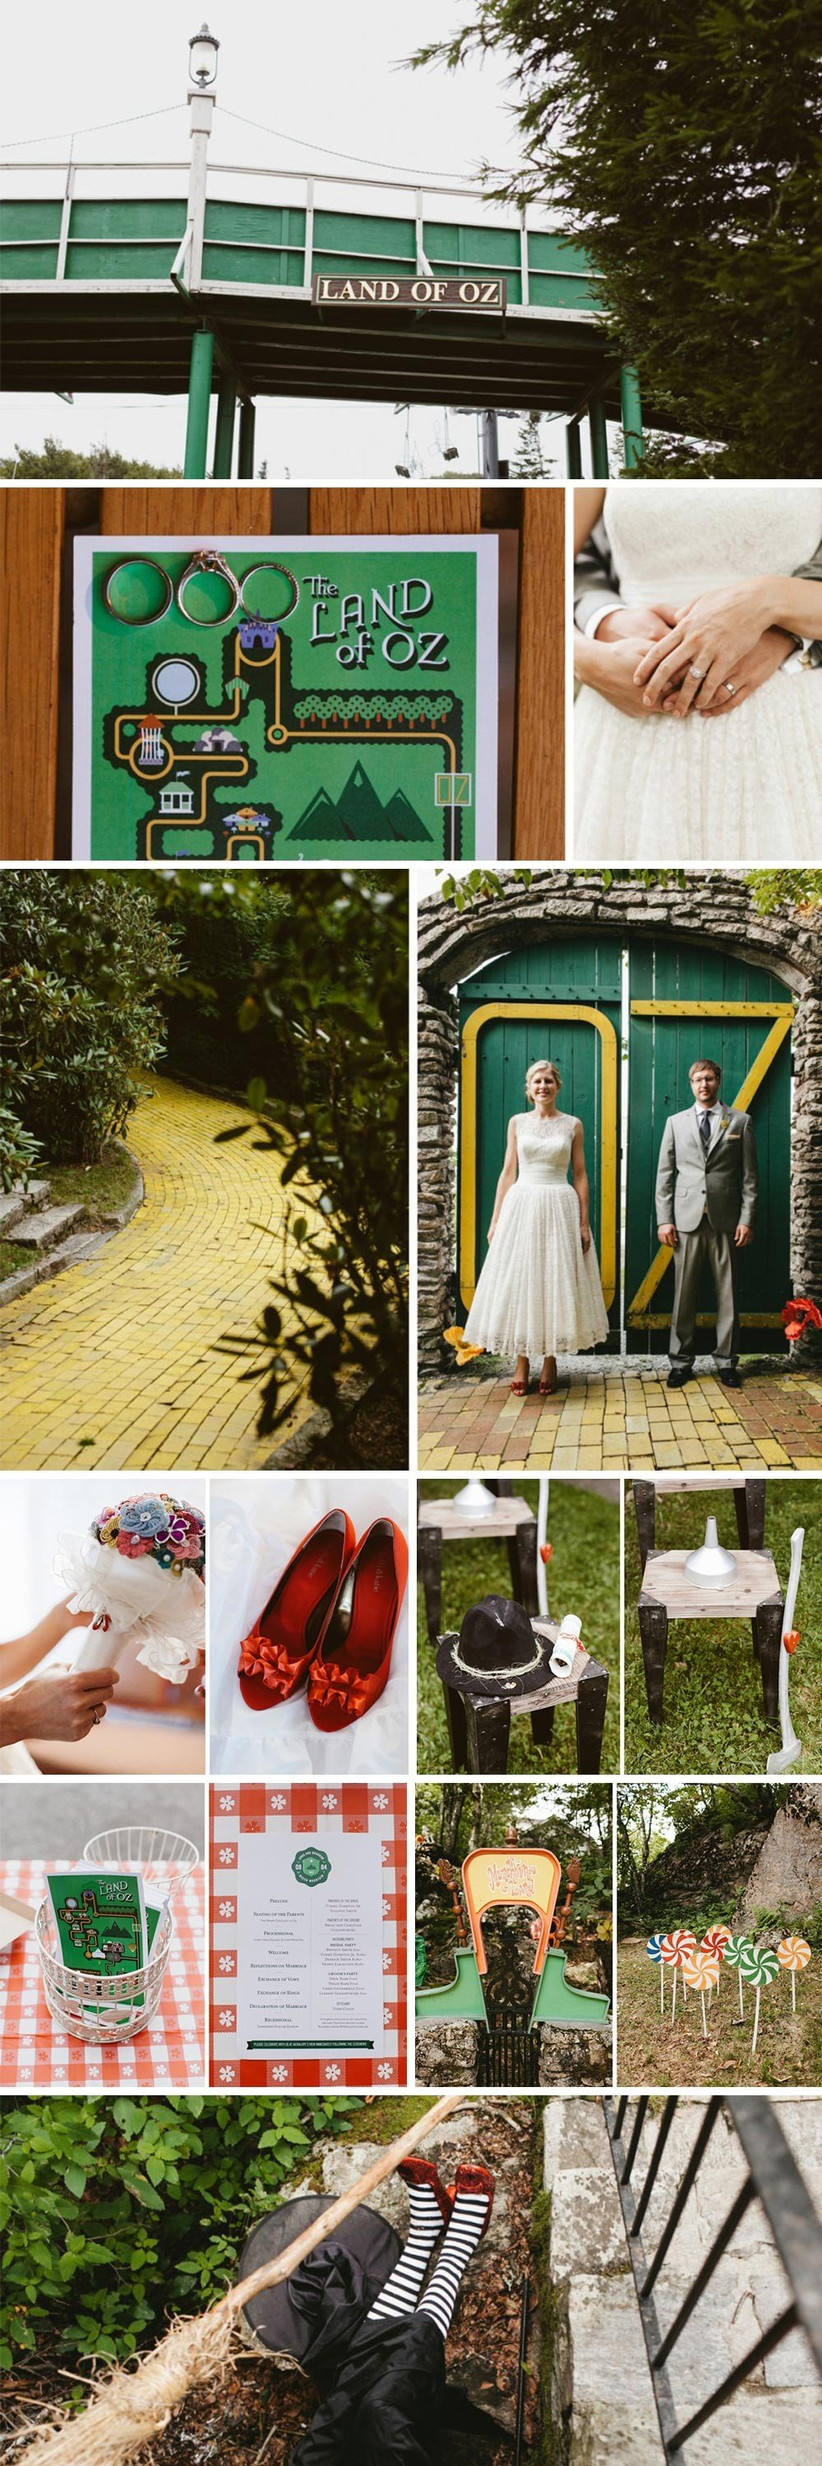 wedding-with-an-unusual-wizard-of-oz-theme